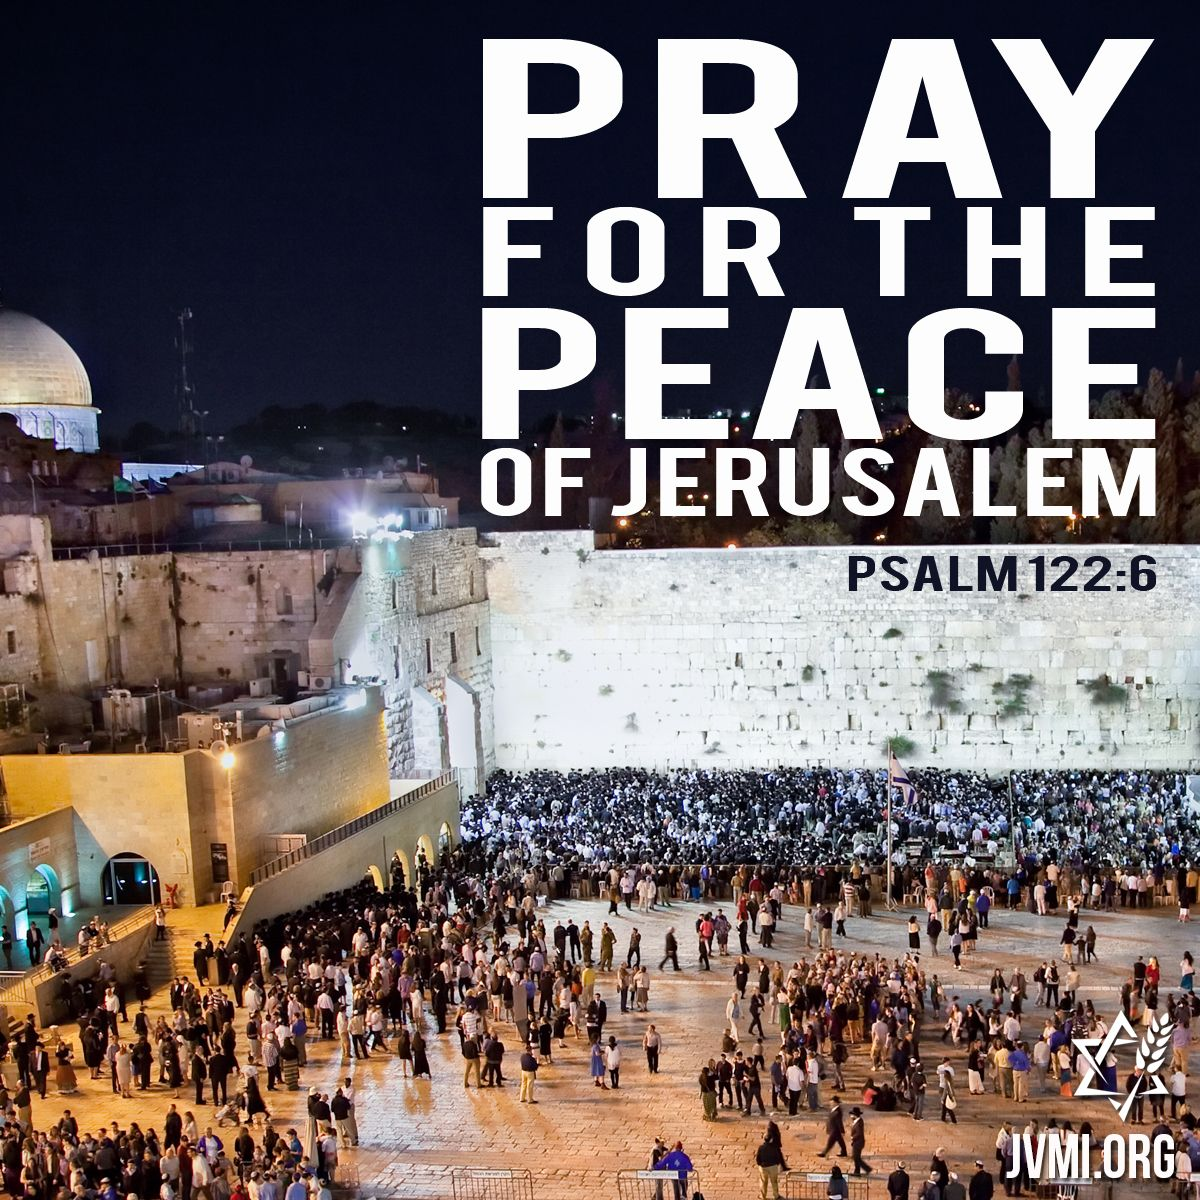 Pray for the peace of Jerusalem! https:/...